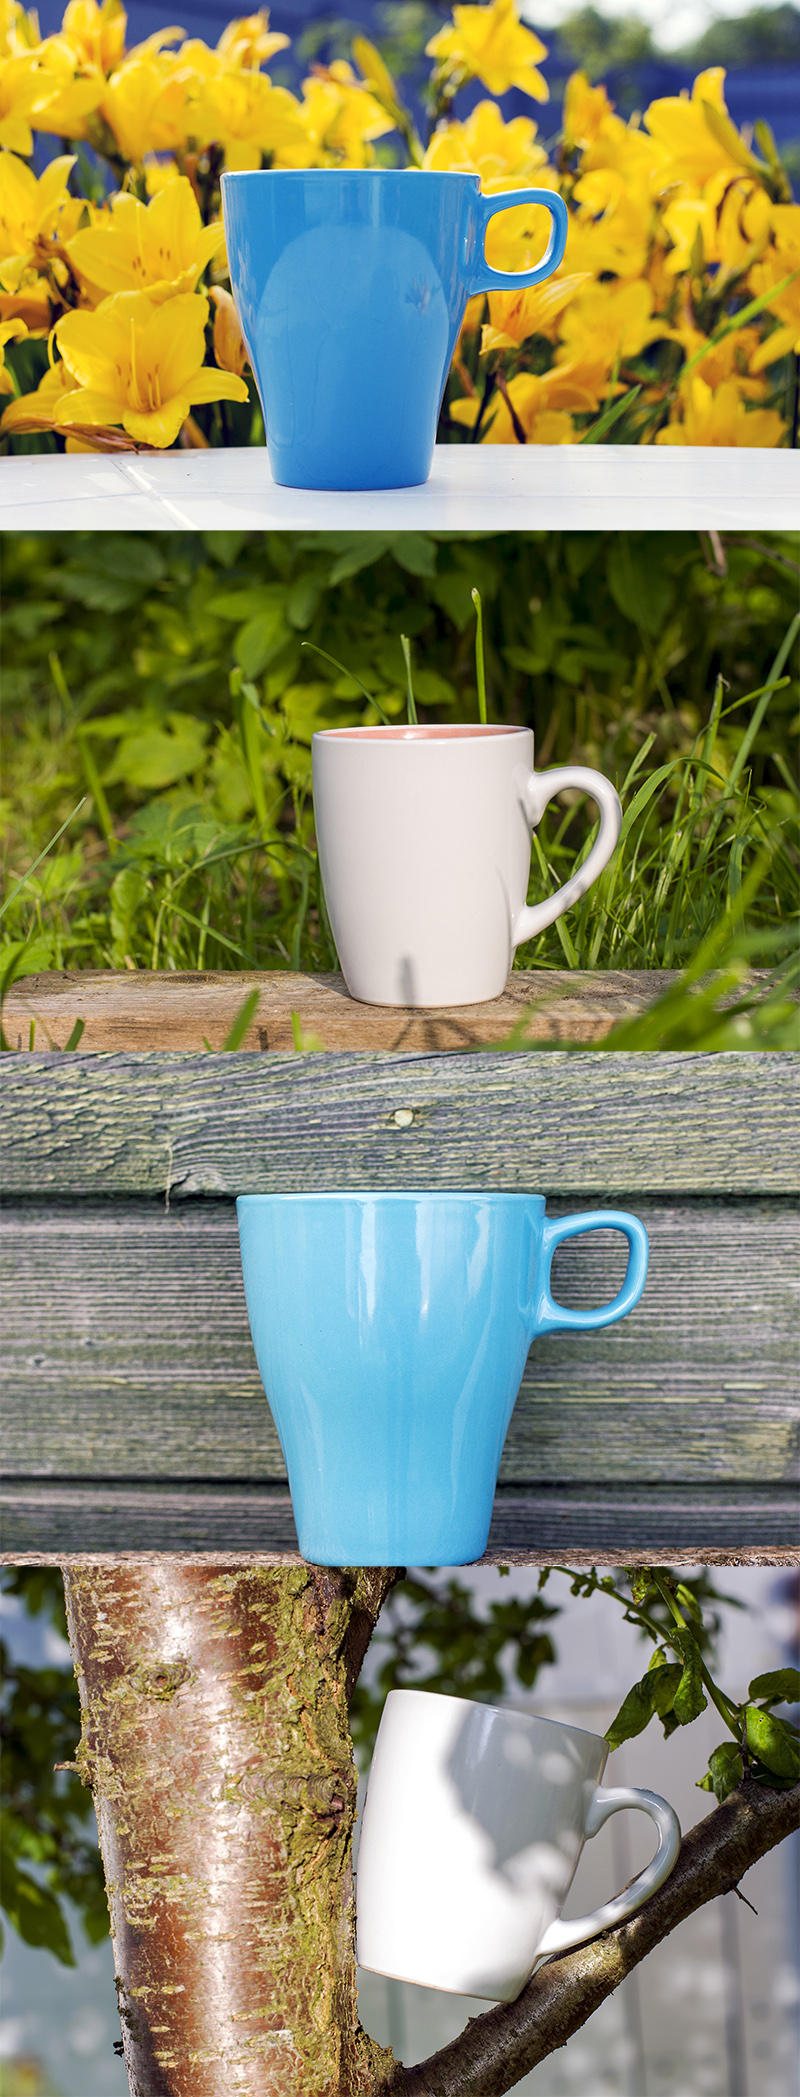 The mugs went out for a walk. They can be seen on a bench, near flowers and even between branches.